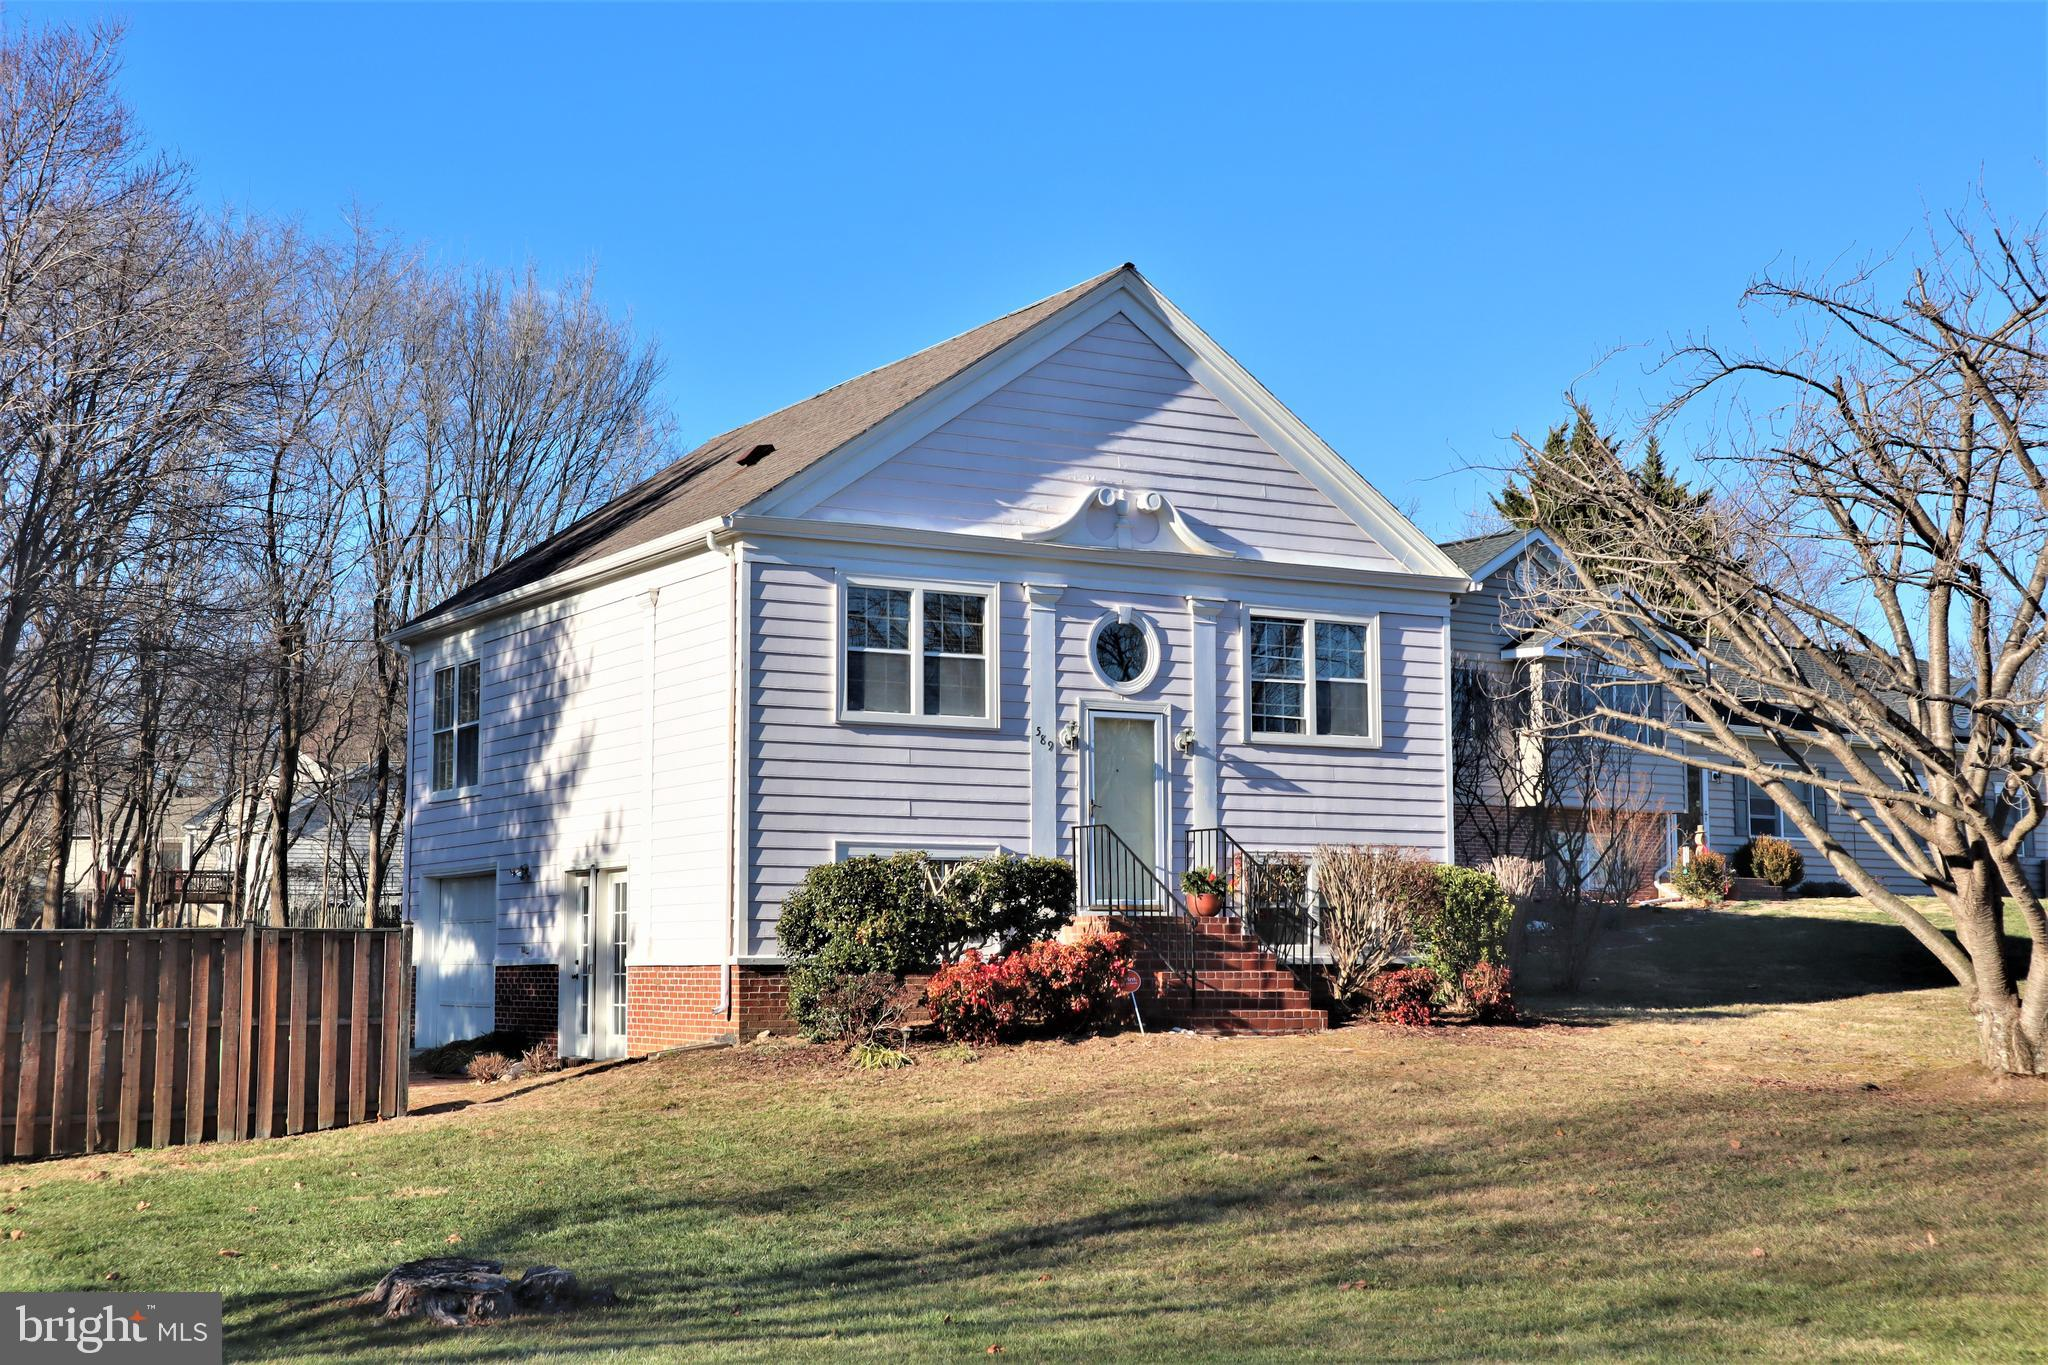 589 Thoroughbred Dr, Charles Town, WV, 25414